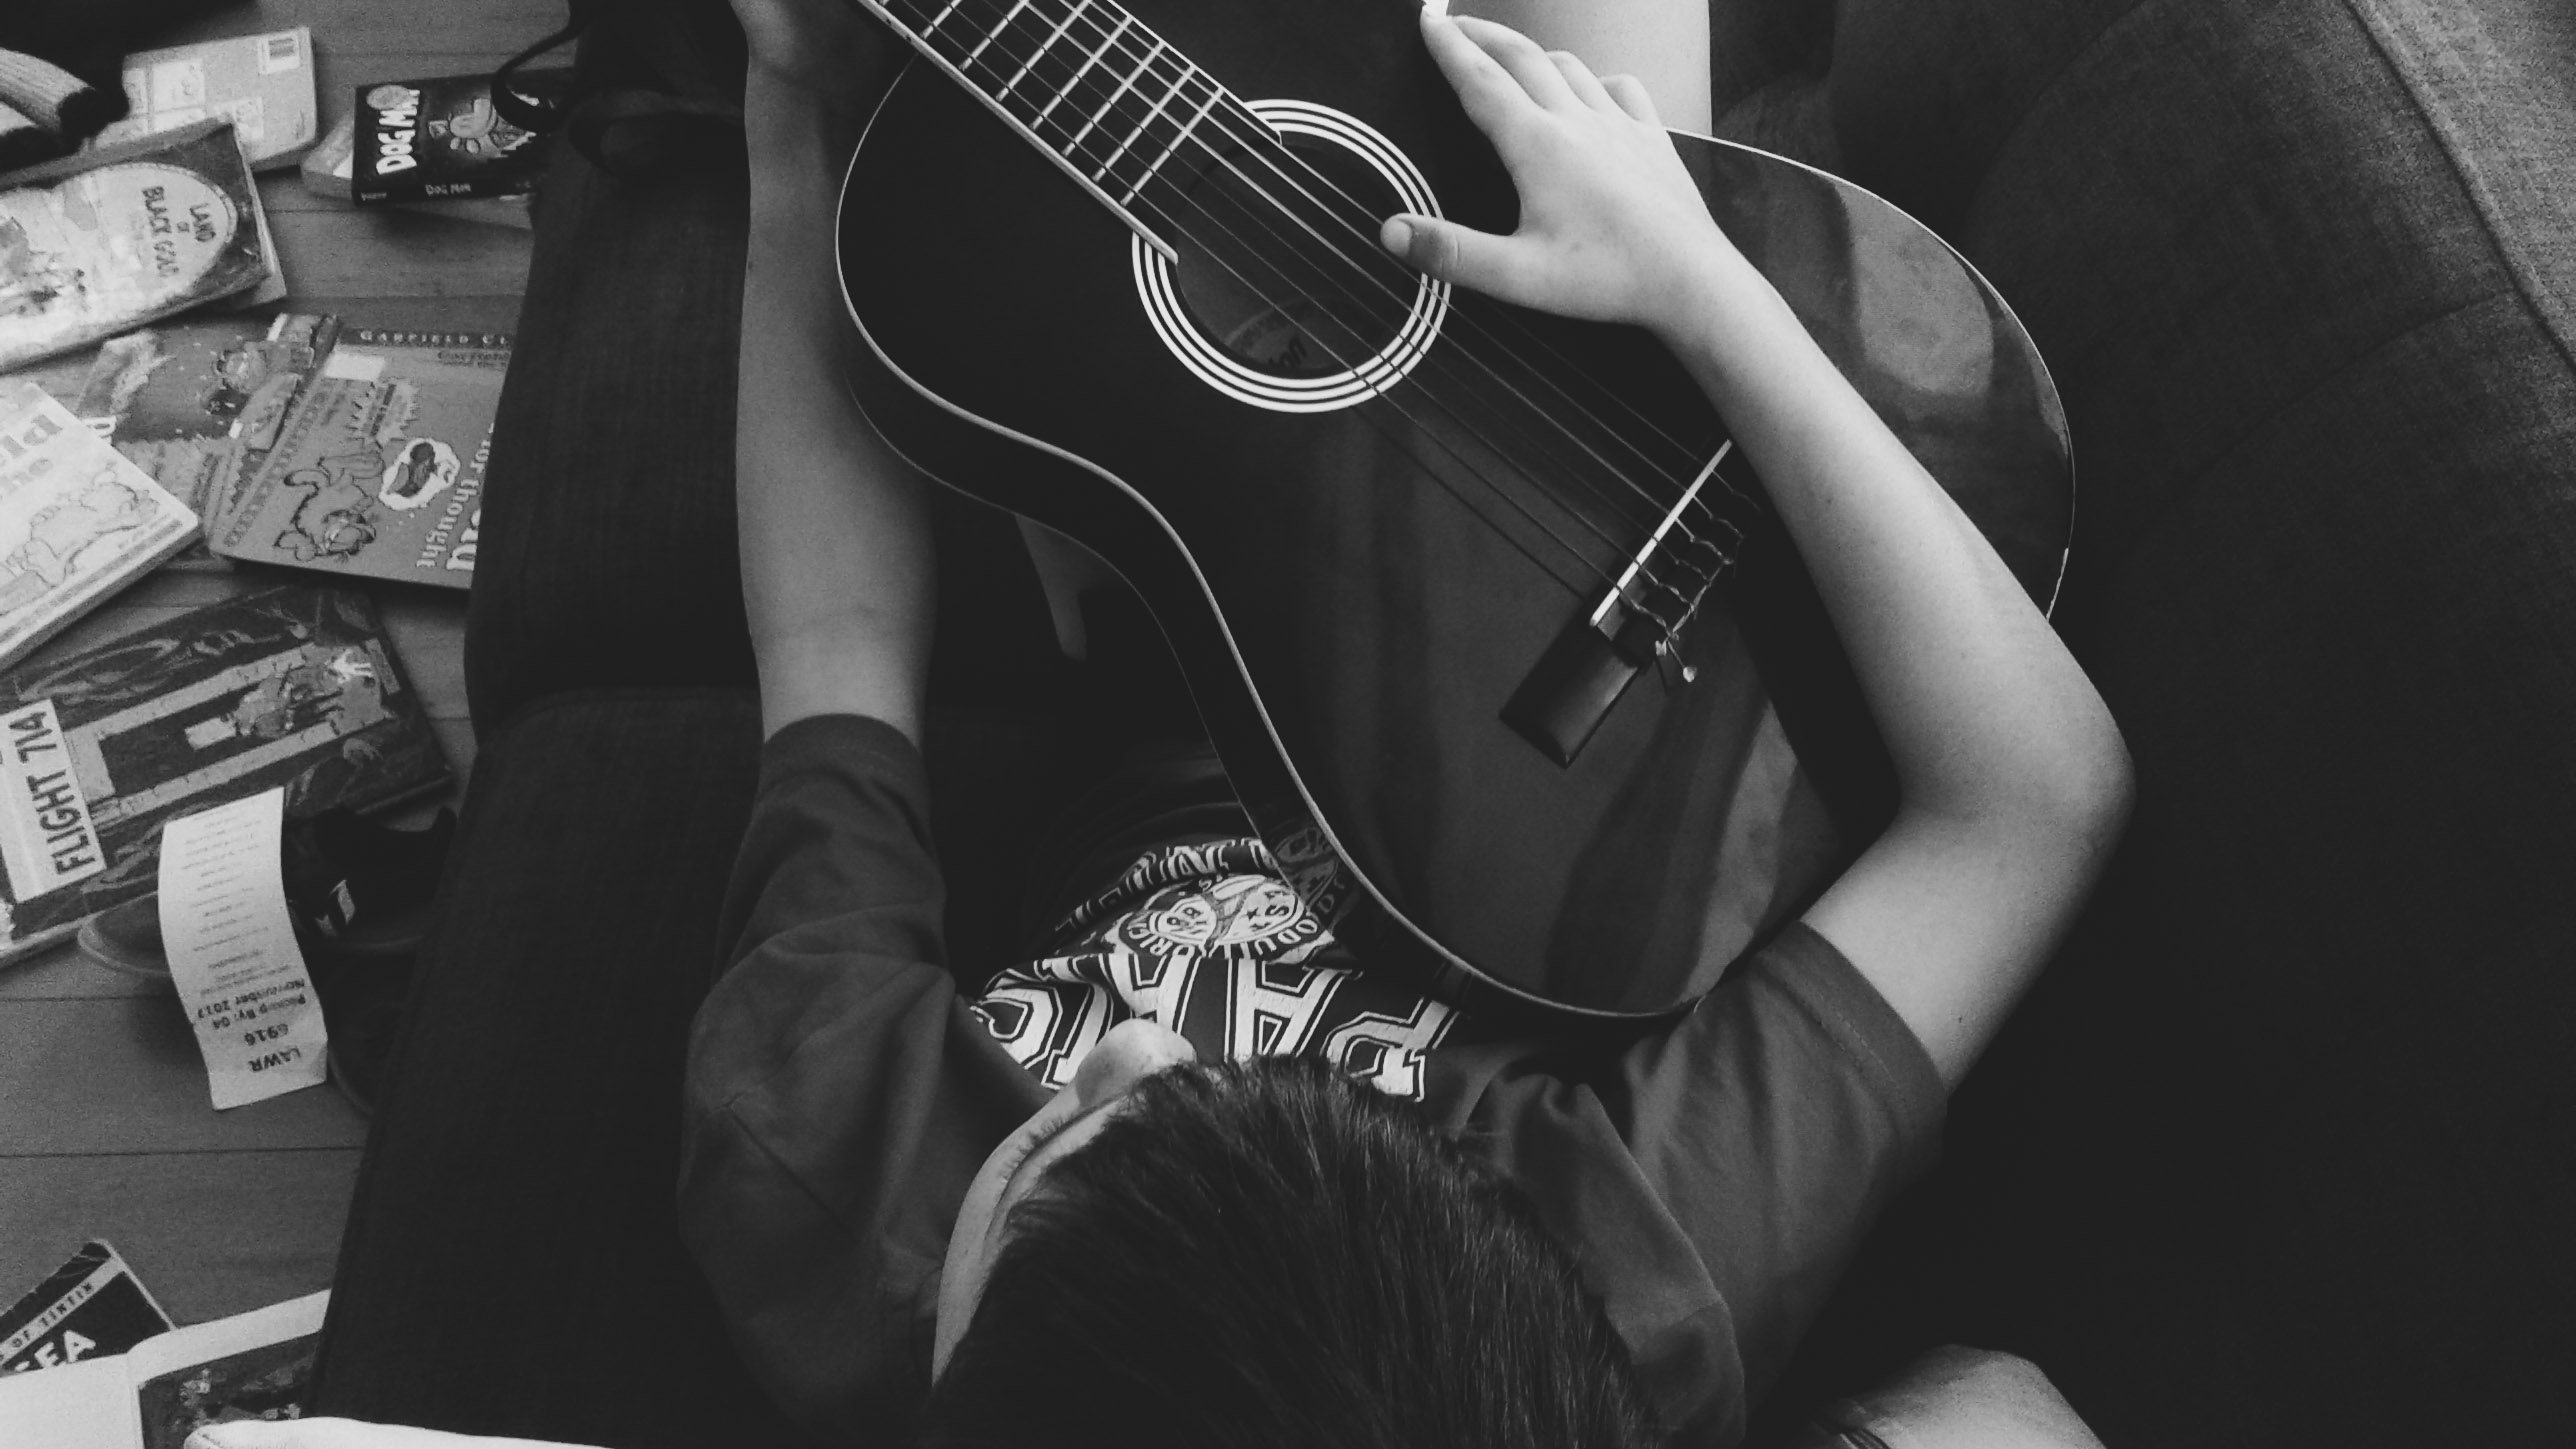 Man Playing Guitar Lying On Couch In Grayscale Photography Free Stock Photo